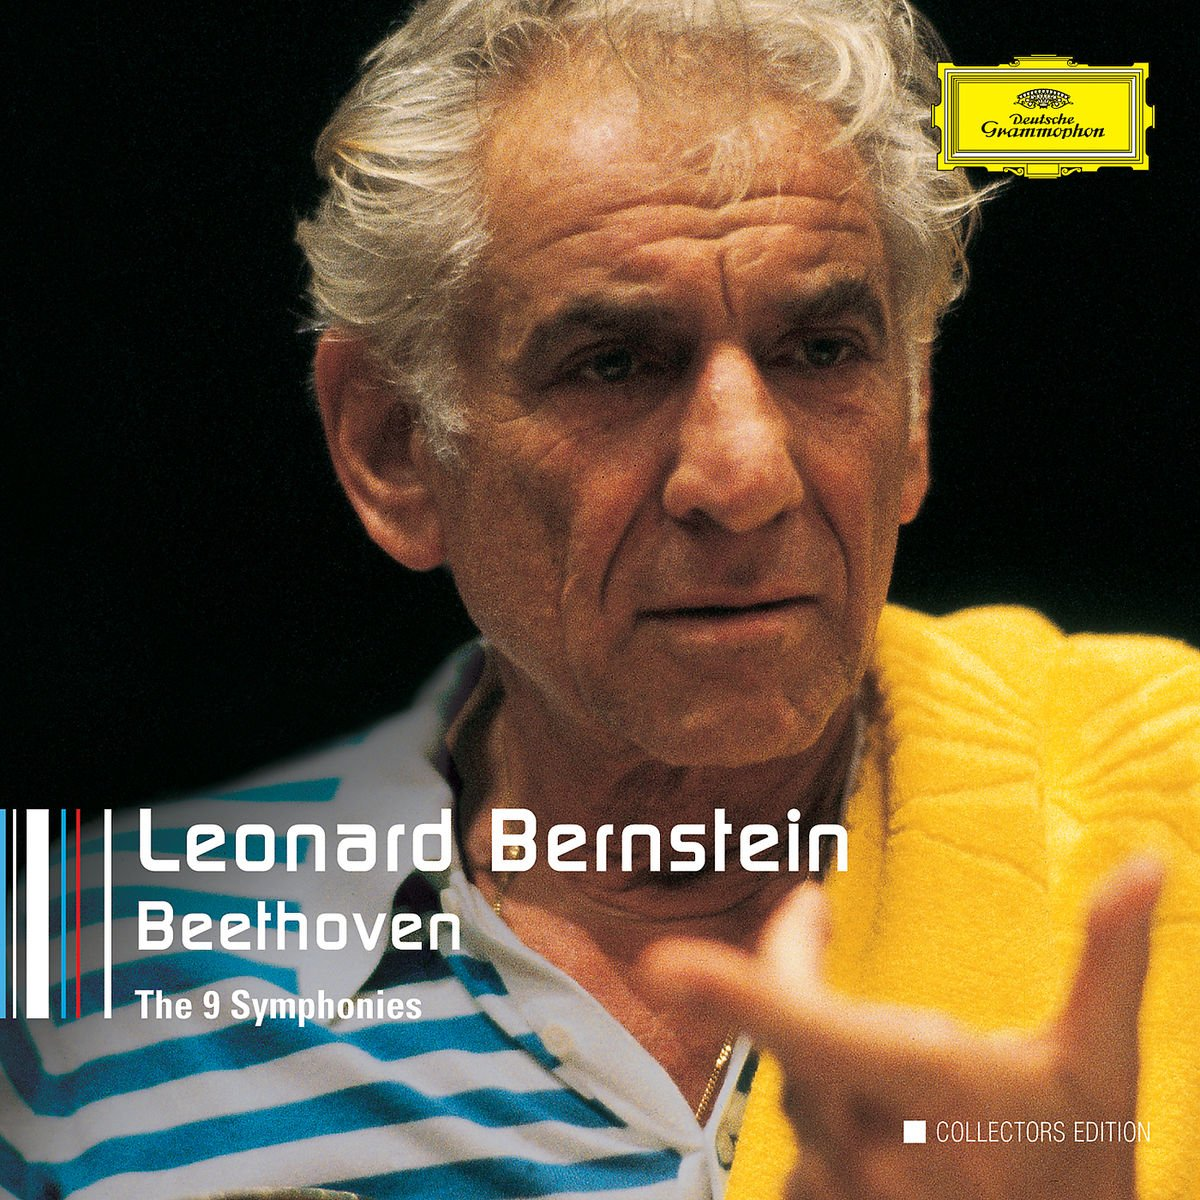 Beethoven: The 9 Symphonies by BEETHOVEN,L.V.